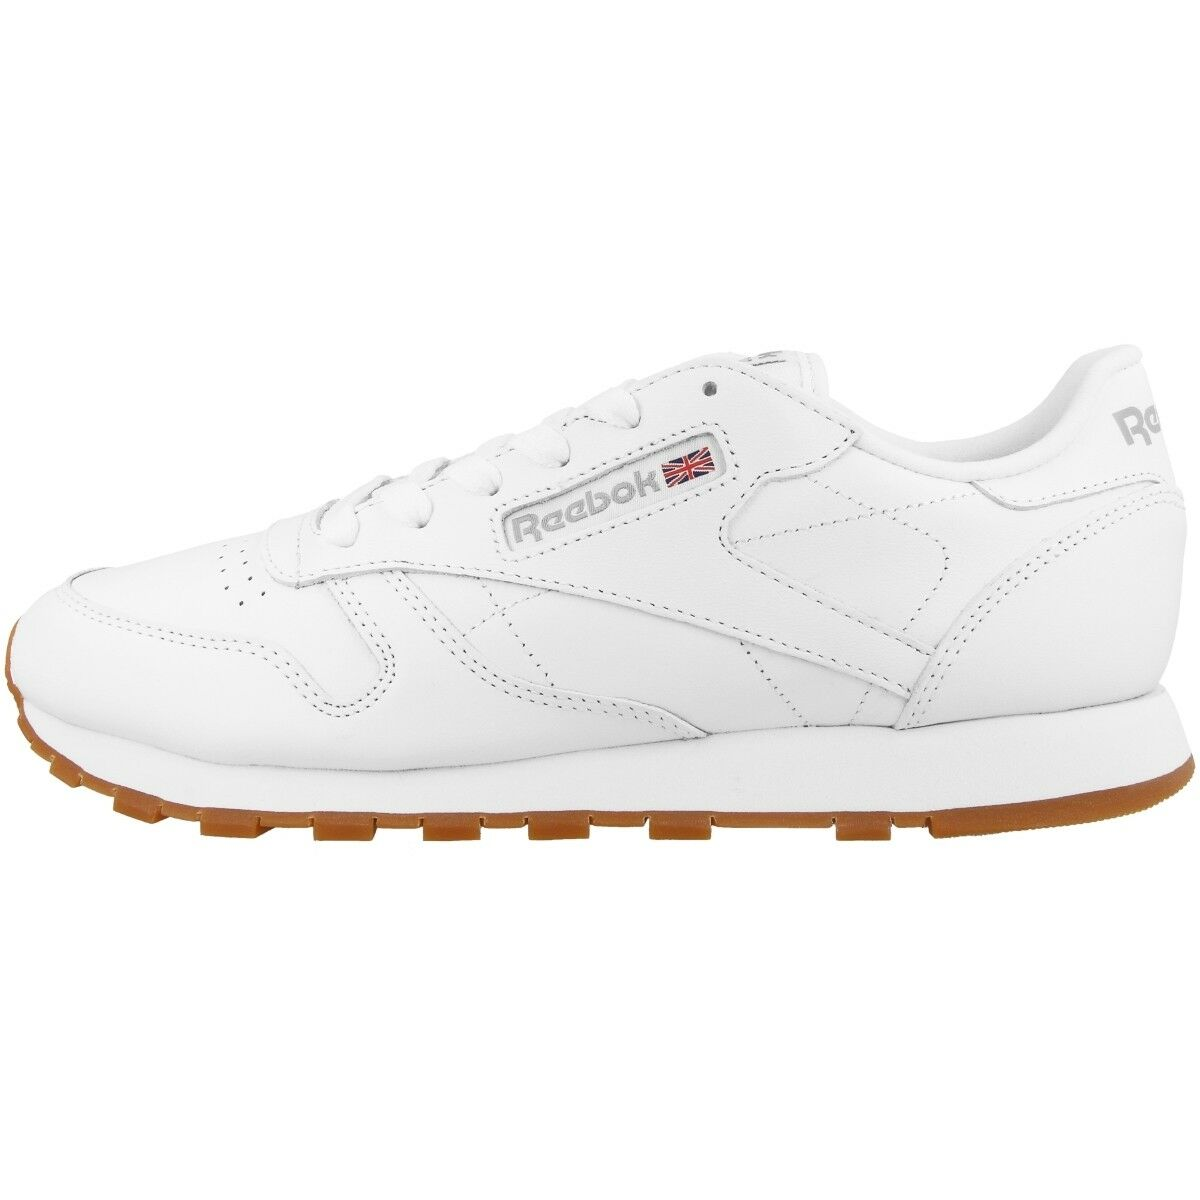 Reebok Classic Leather Women Ladies Casual shoes Trainers White Gum 49803